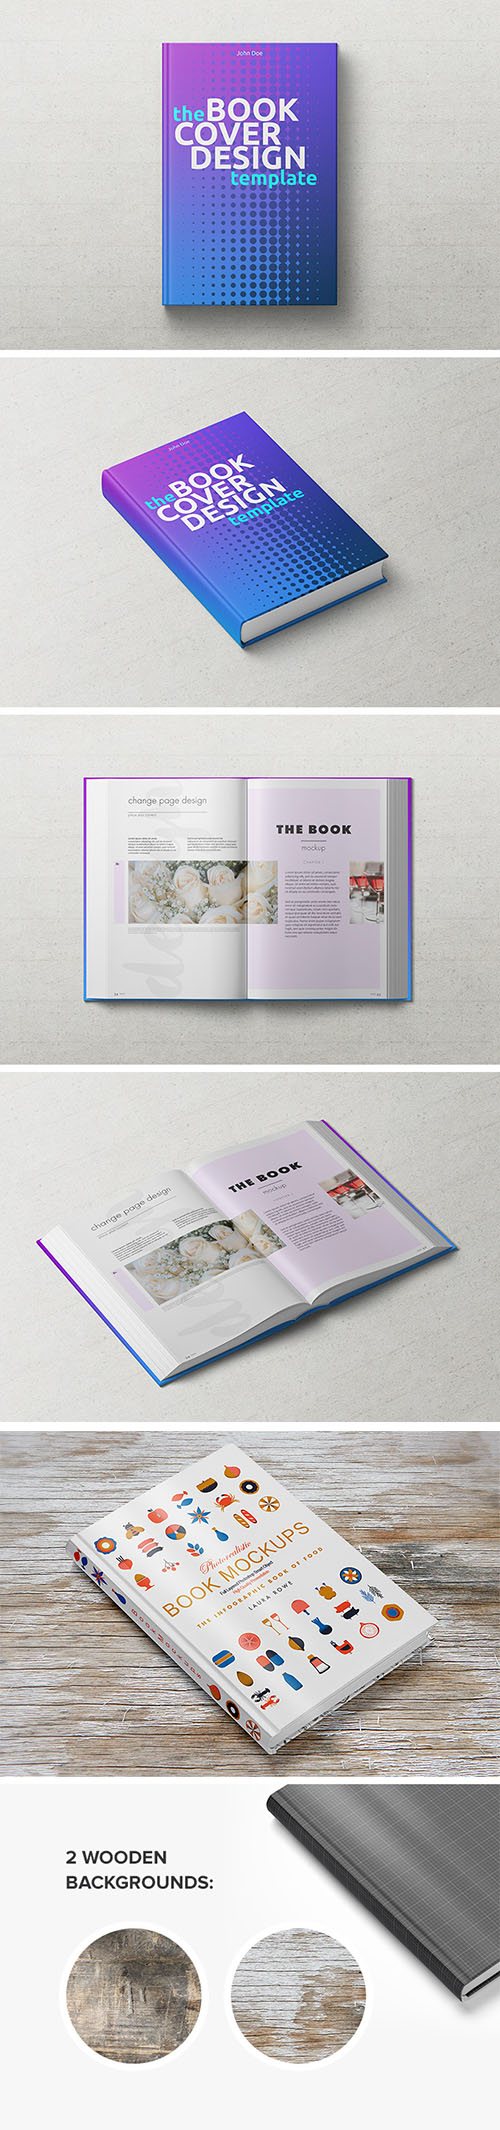 PSD Mock-Up's - Hardback Book 2016